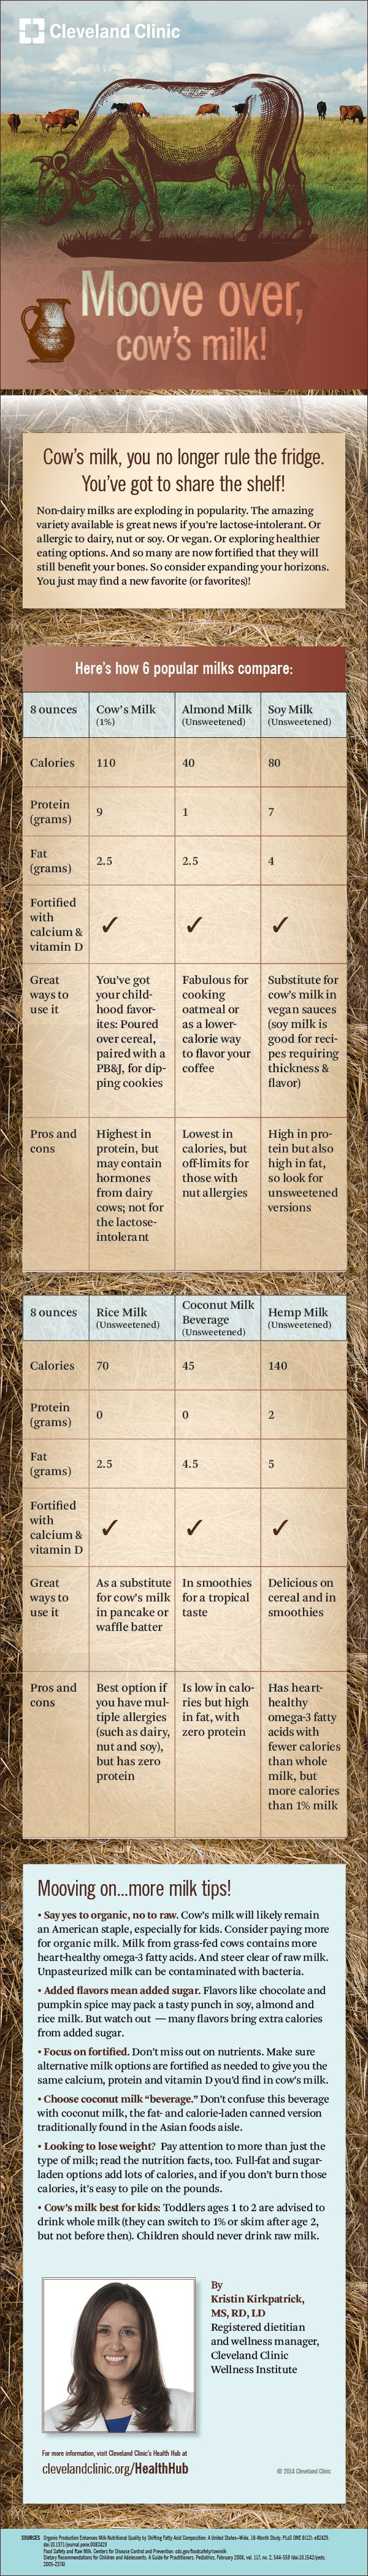 Cleveland Clinic helps you compare all the many milks available this infographic on HealthHub.  Moove over cow's milk!